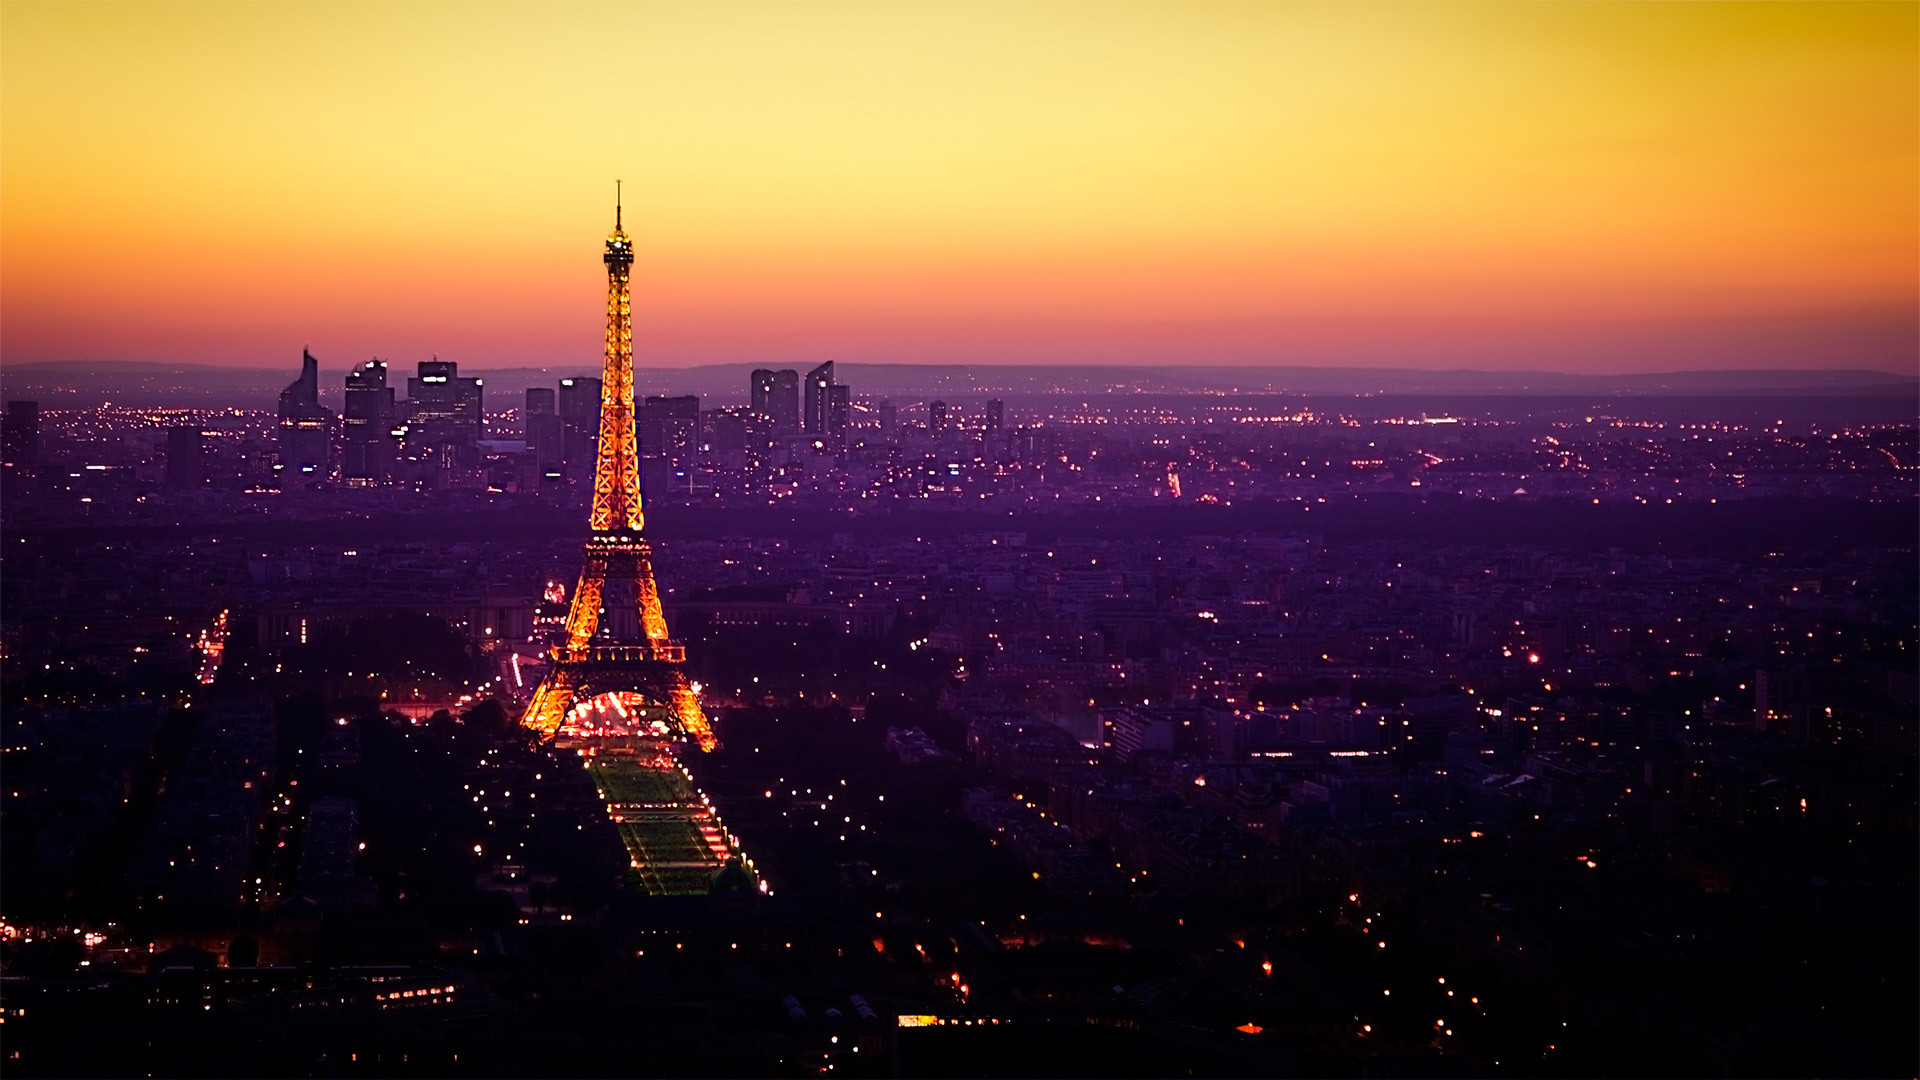 Eiffel tower sunset wallpaper